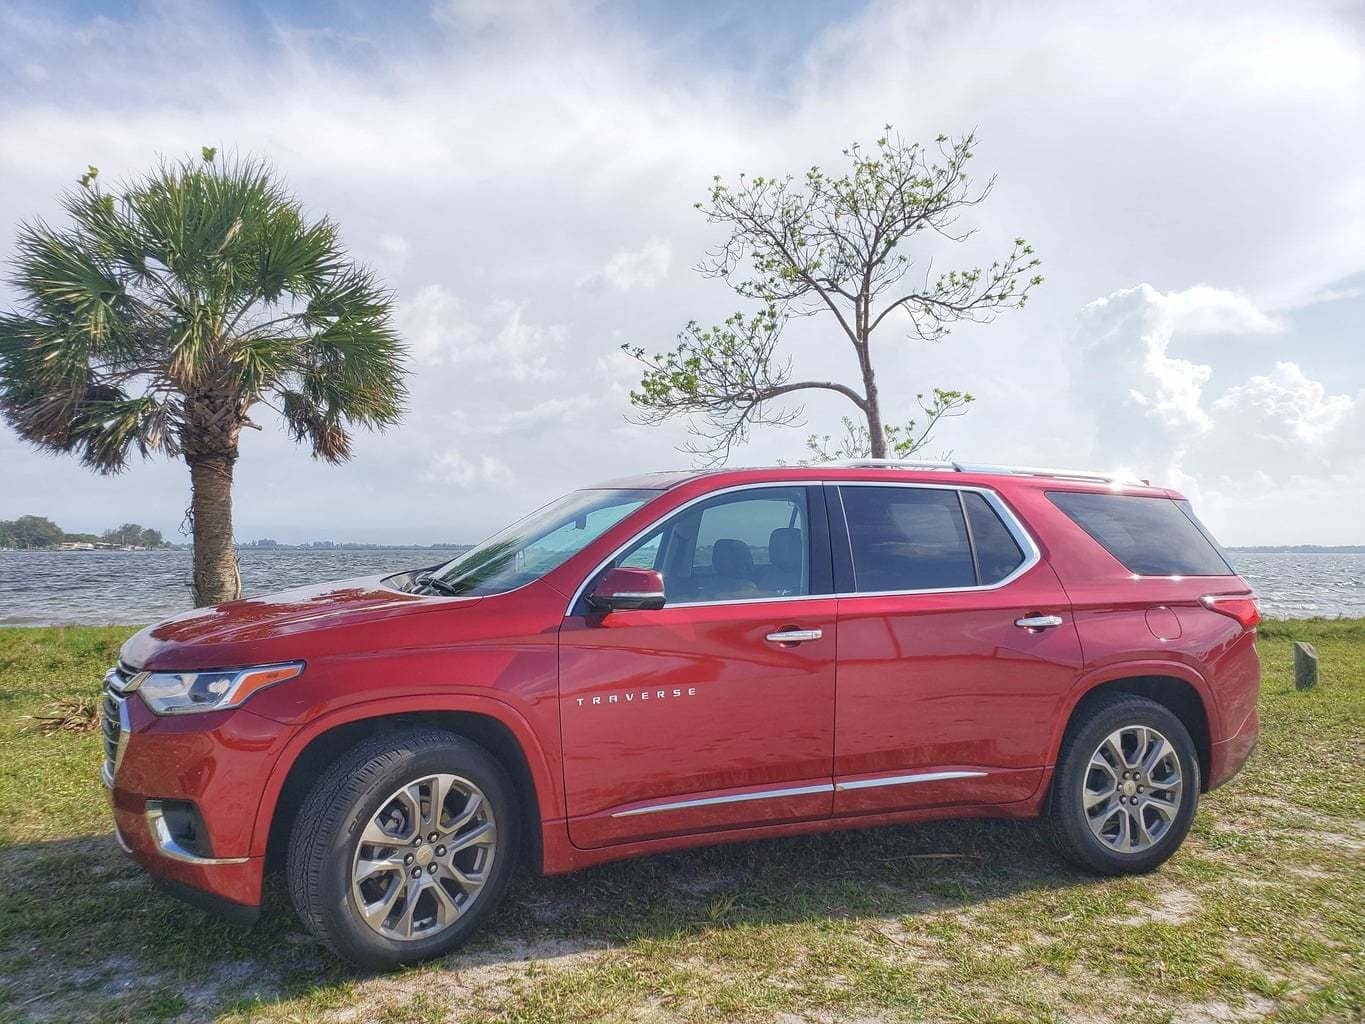 Our Florida Road Trip with the 2018 Chevy Traverse